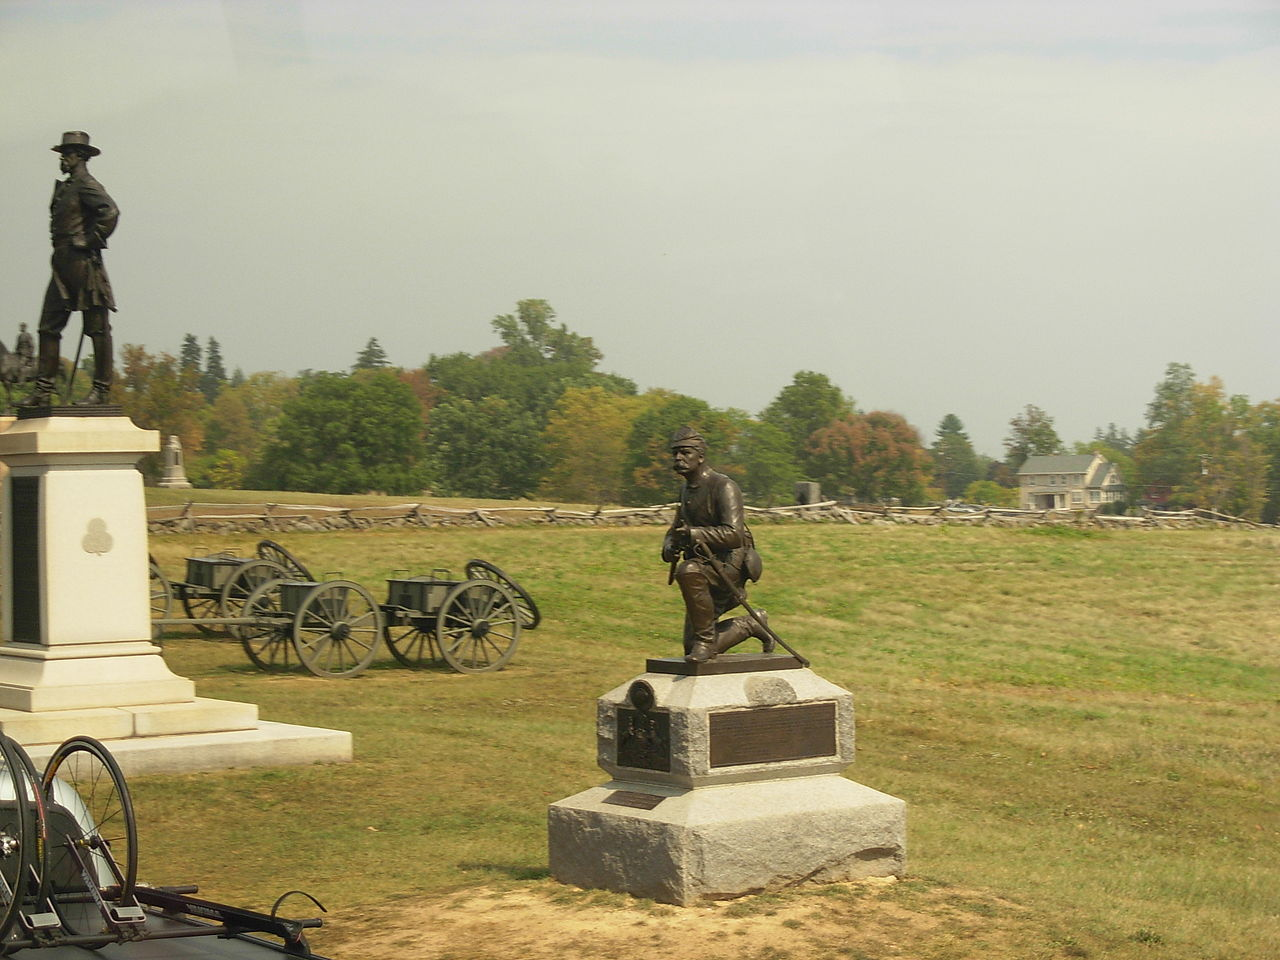 Amazing Attraction in Pennsylvania-Gettysburg National Military Park